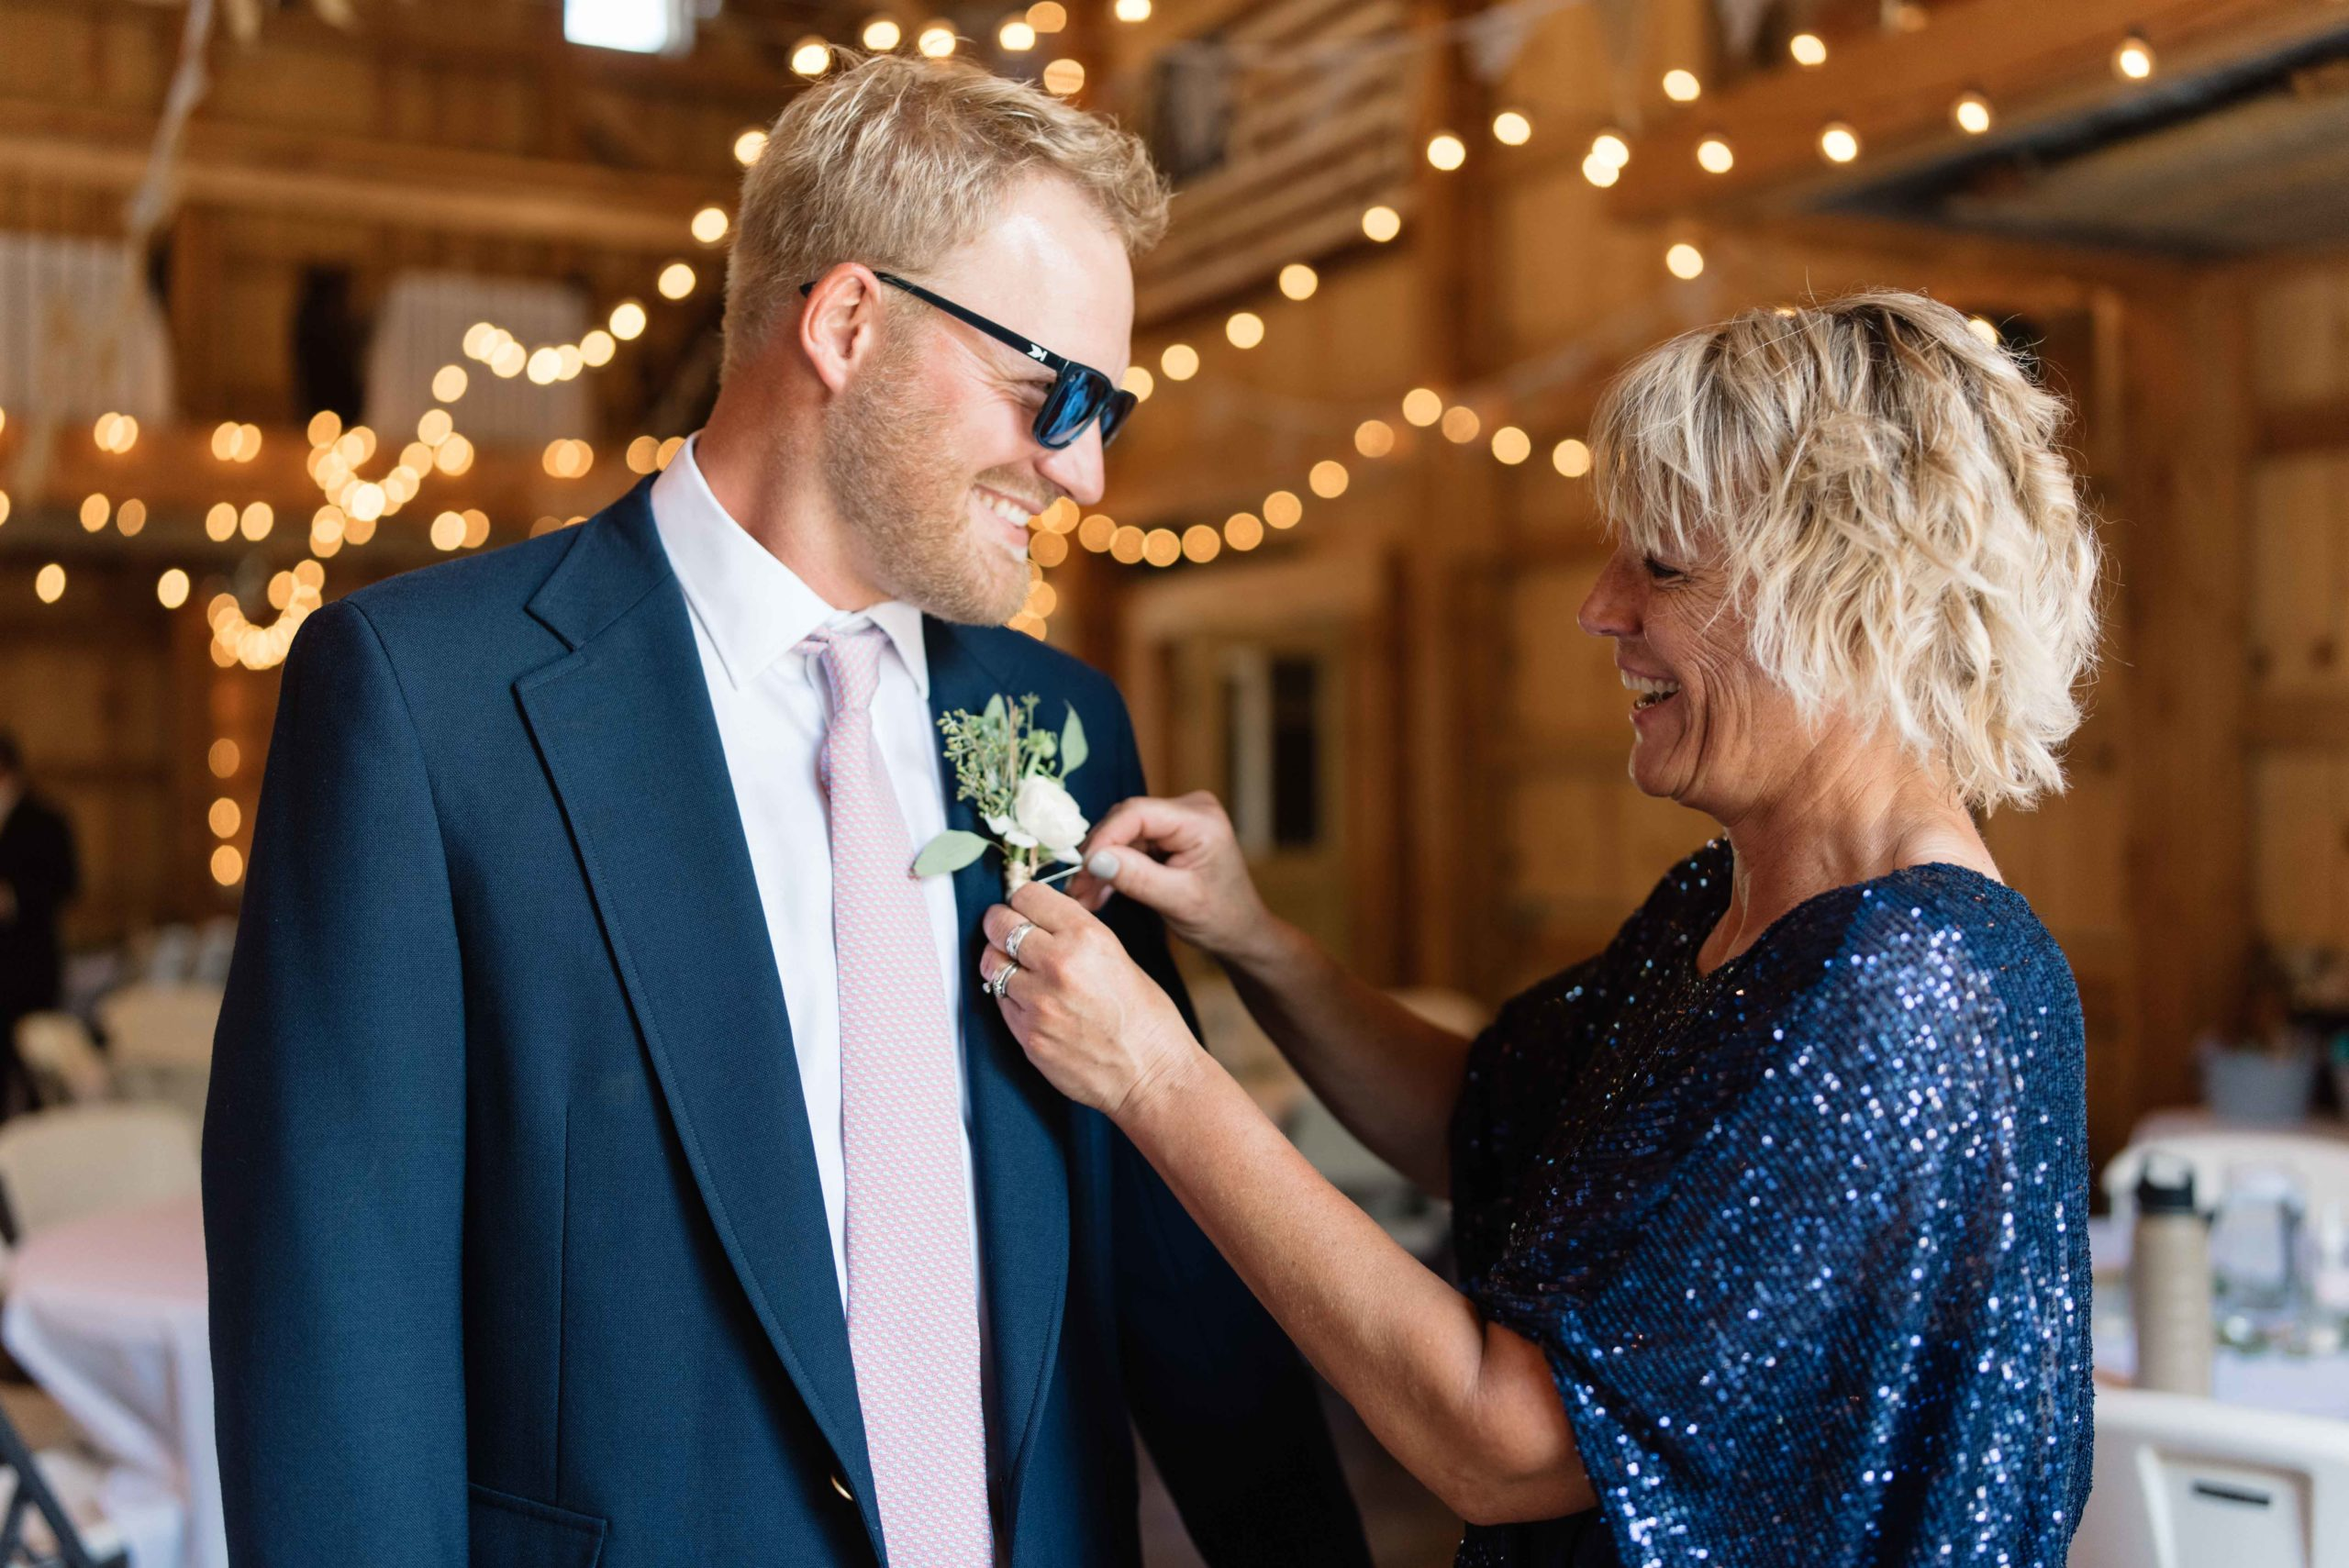 mom putting on grooms boutonniere with edison bulb lights schafer century barn Iowa wedding venue